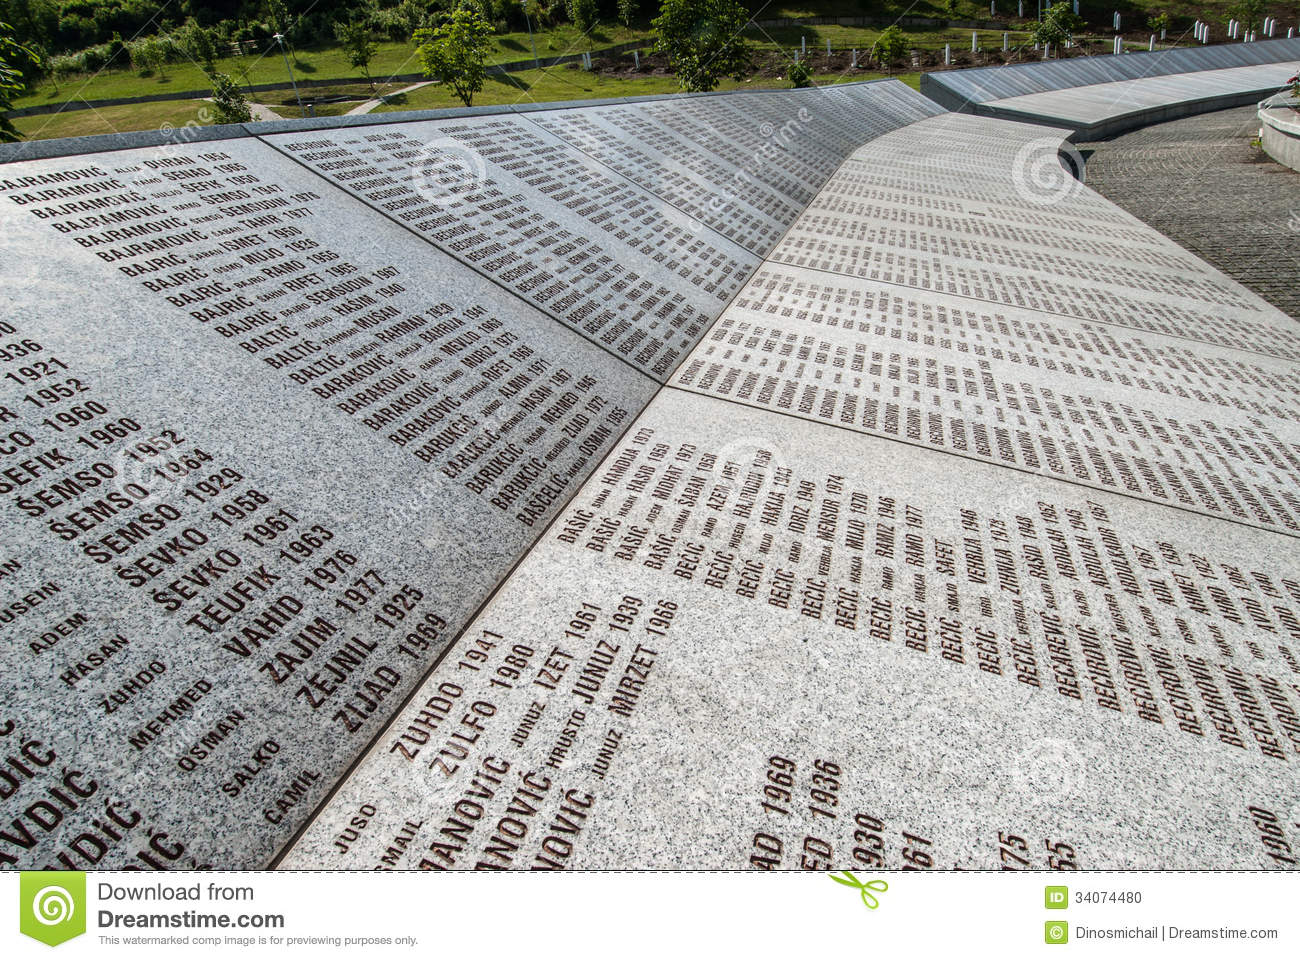 Best 50 Srebrenica Wallpaper on HipWallpaper Srebrenica 1300x960